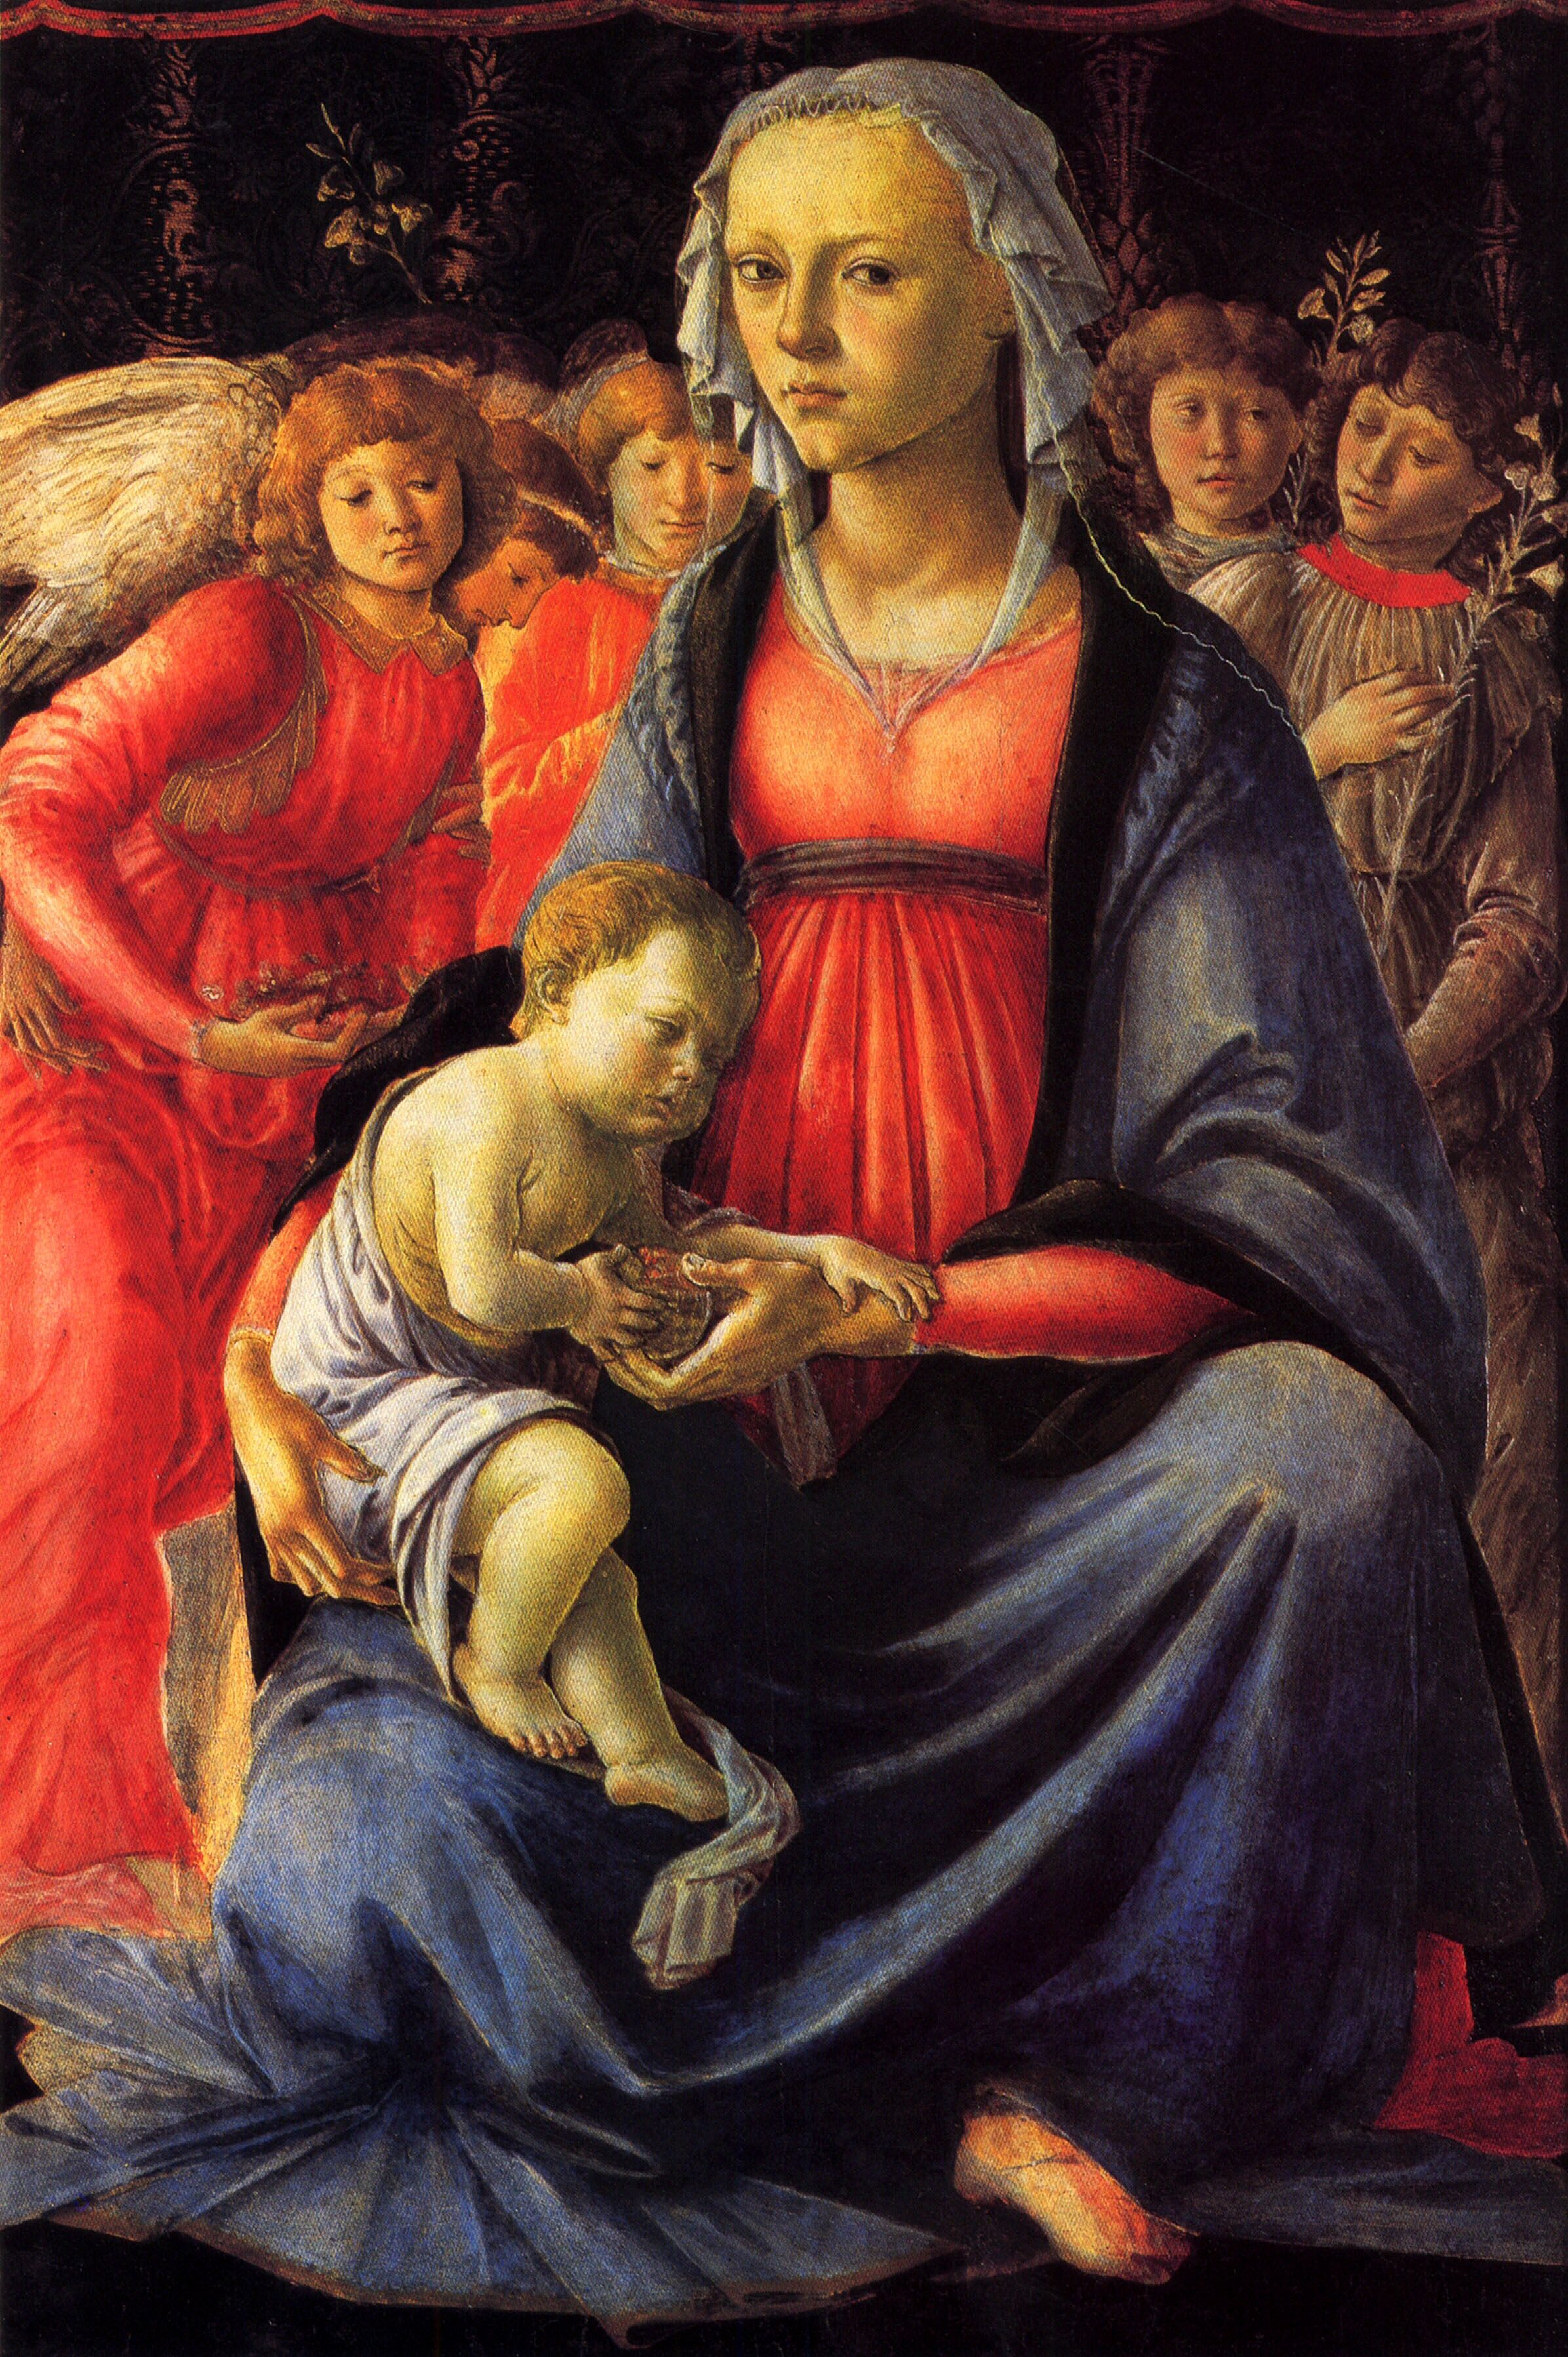 The Virgin and Child surrounded by Five Angels - Sandro Botticelli